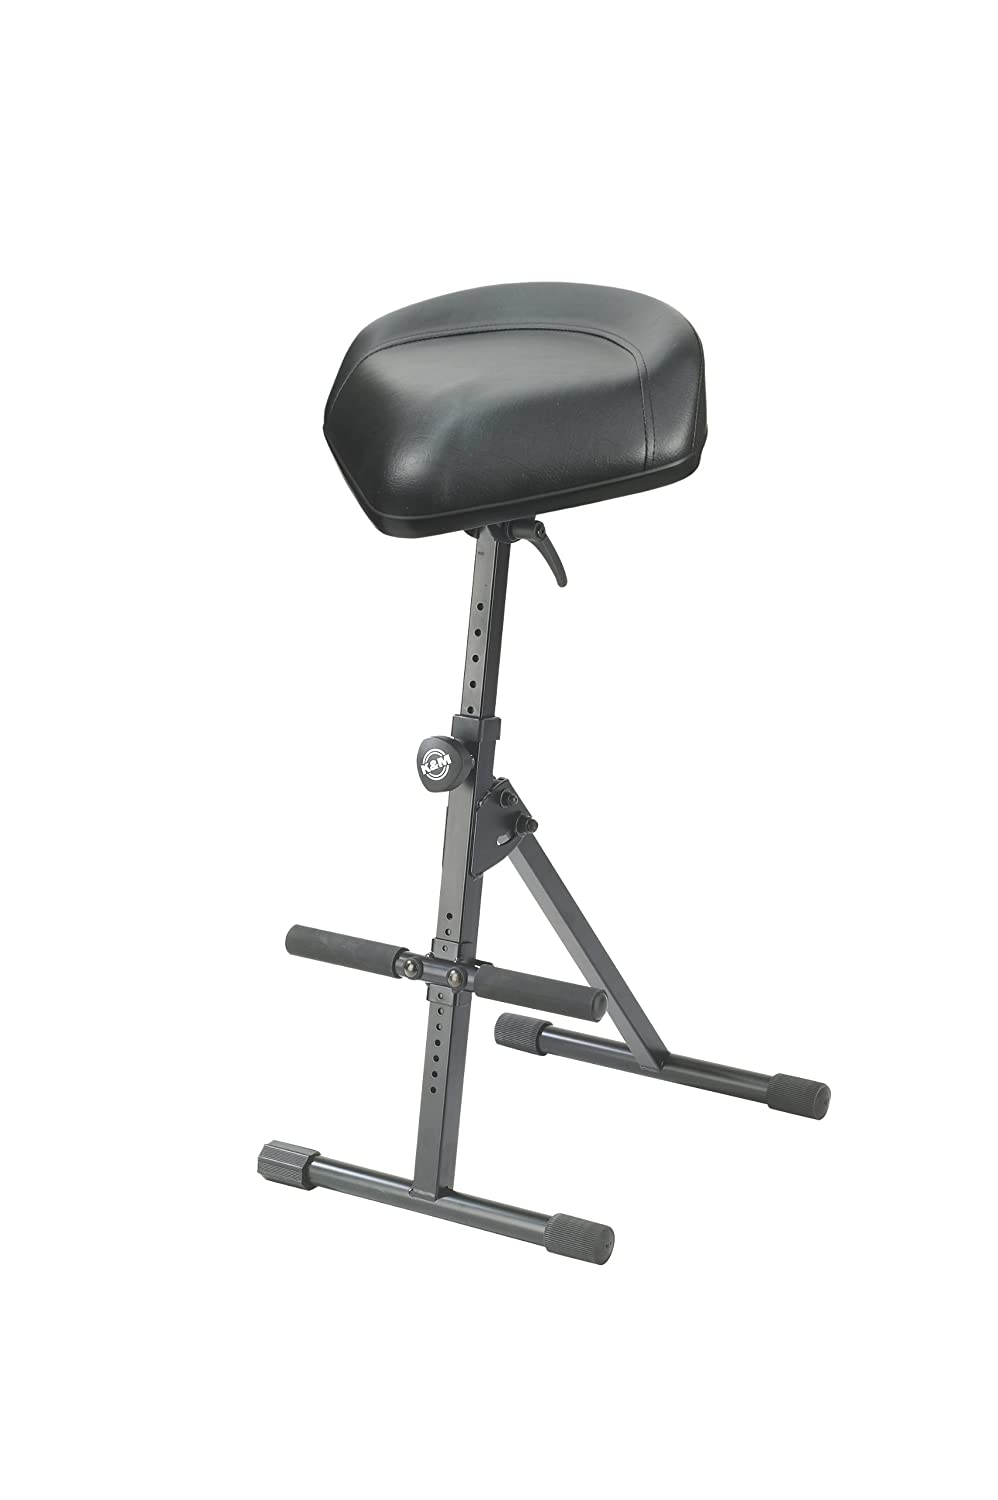 7 Best Guitar Chairs & Stools (To Practice & Perform) for ...